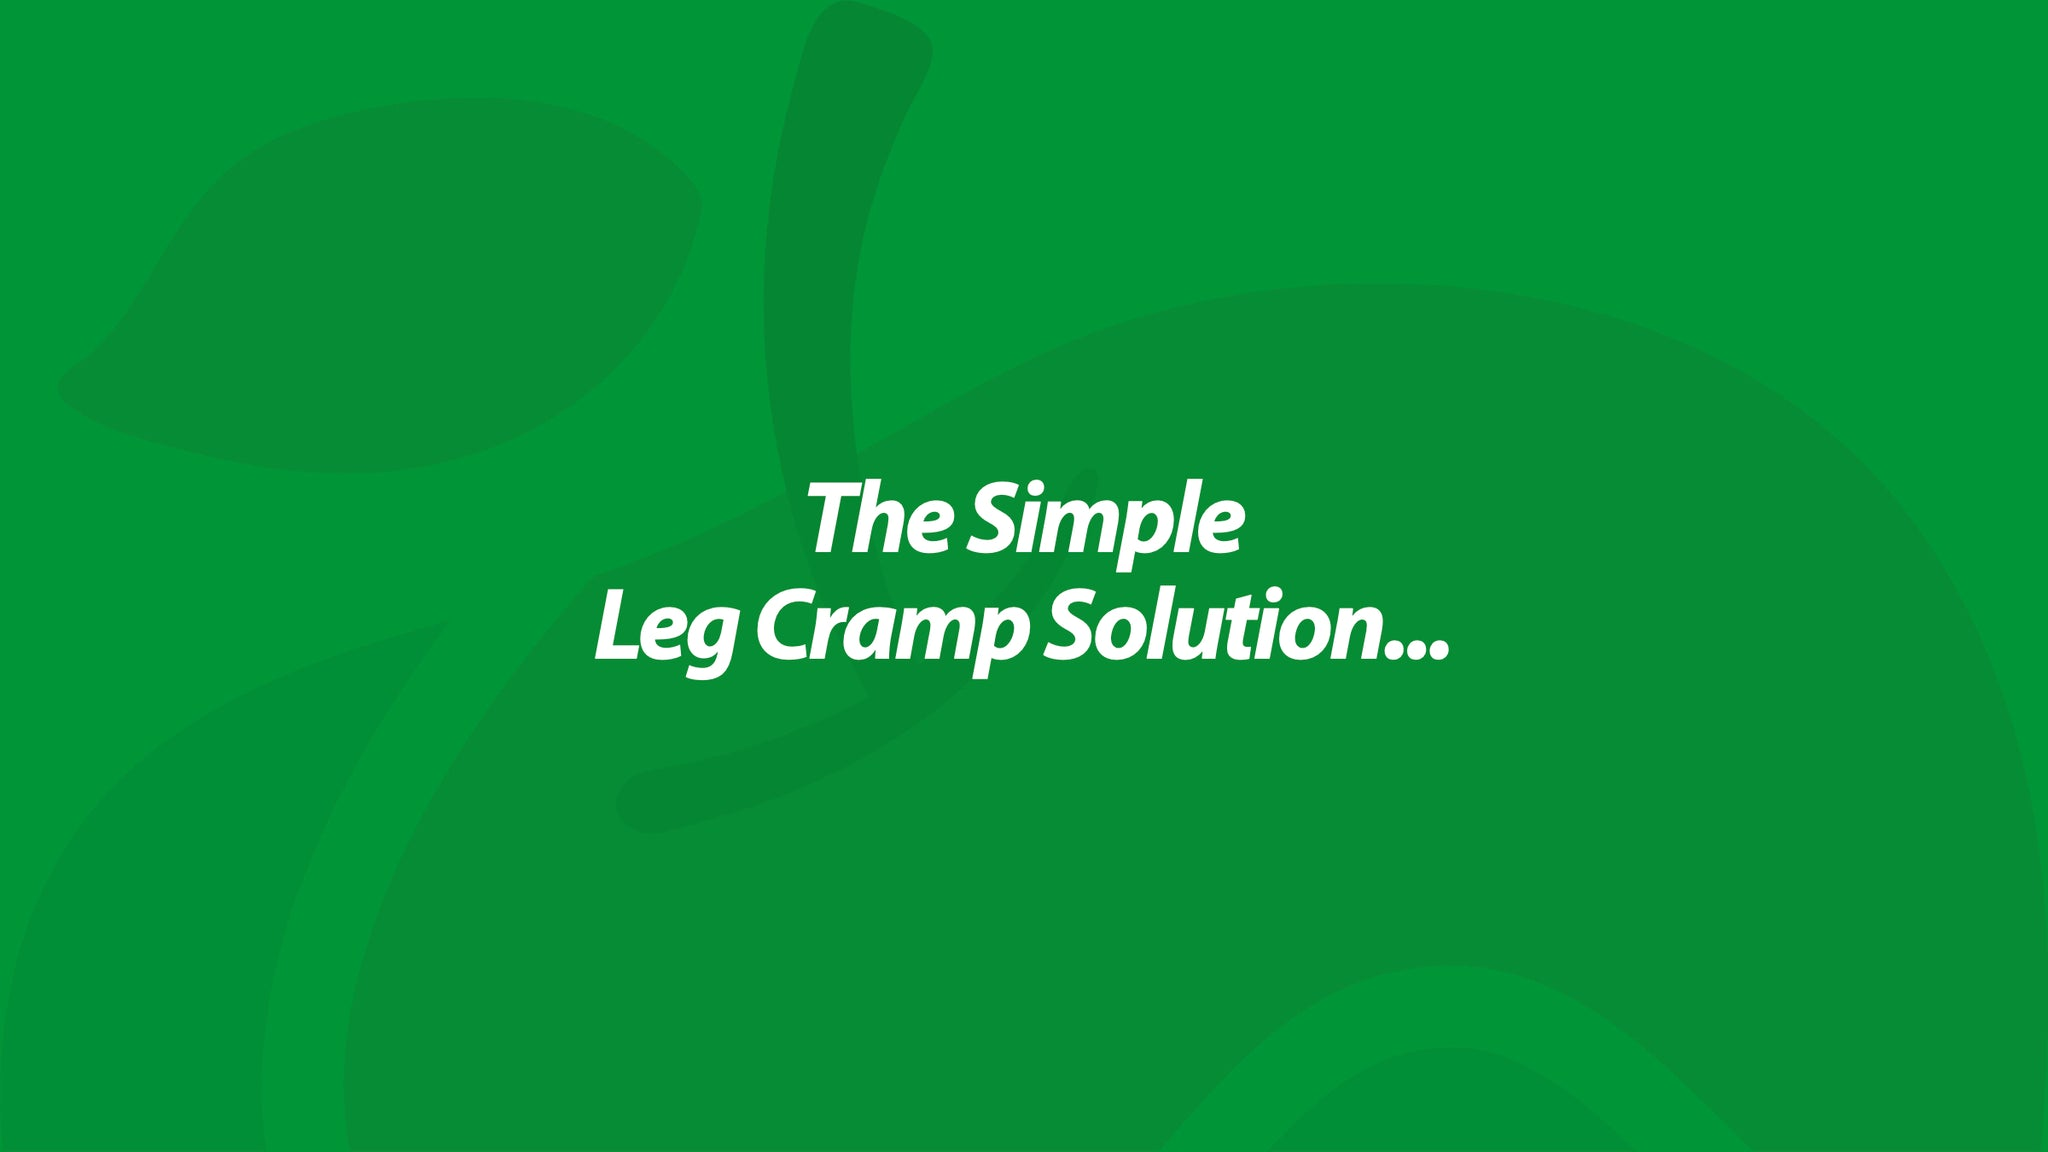 The Simple Leg Cramp Solution...